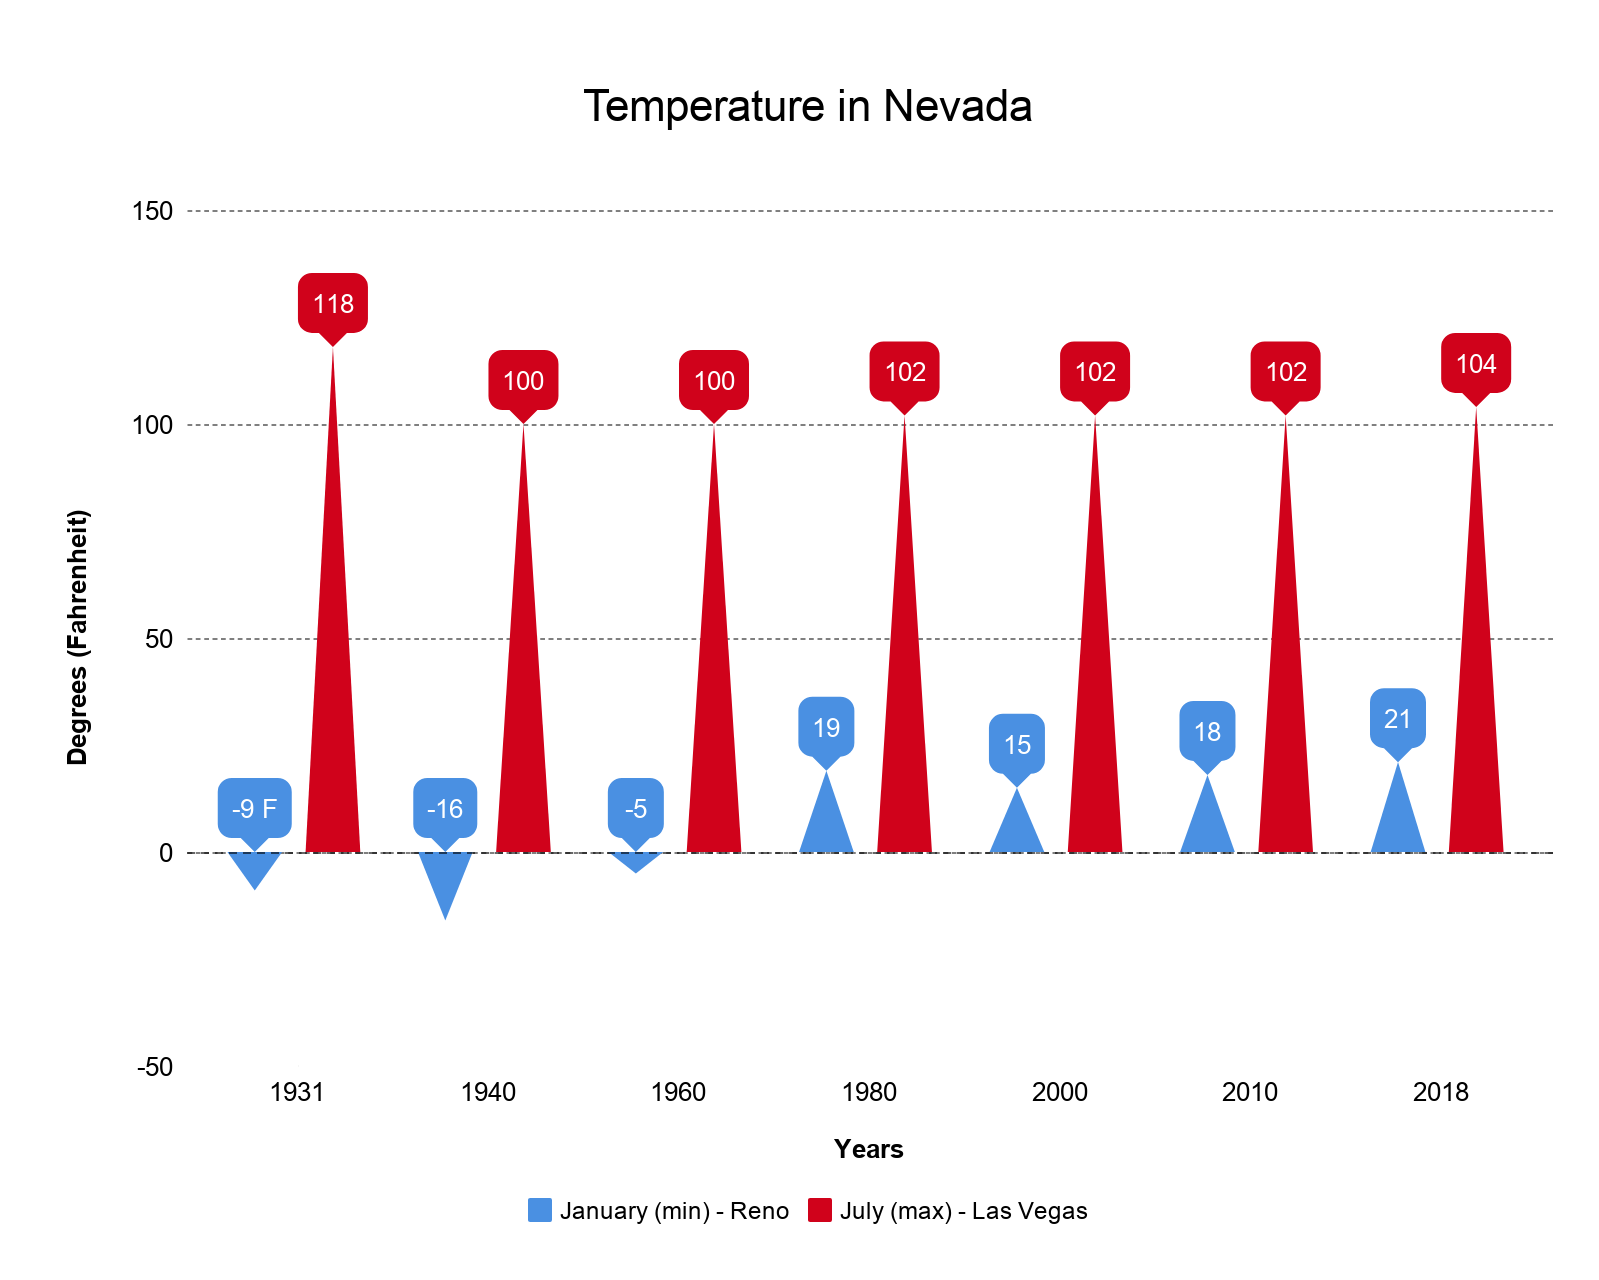 Temperature in Nevada